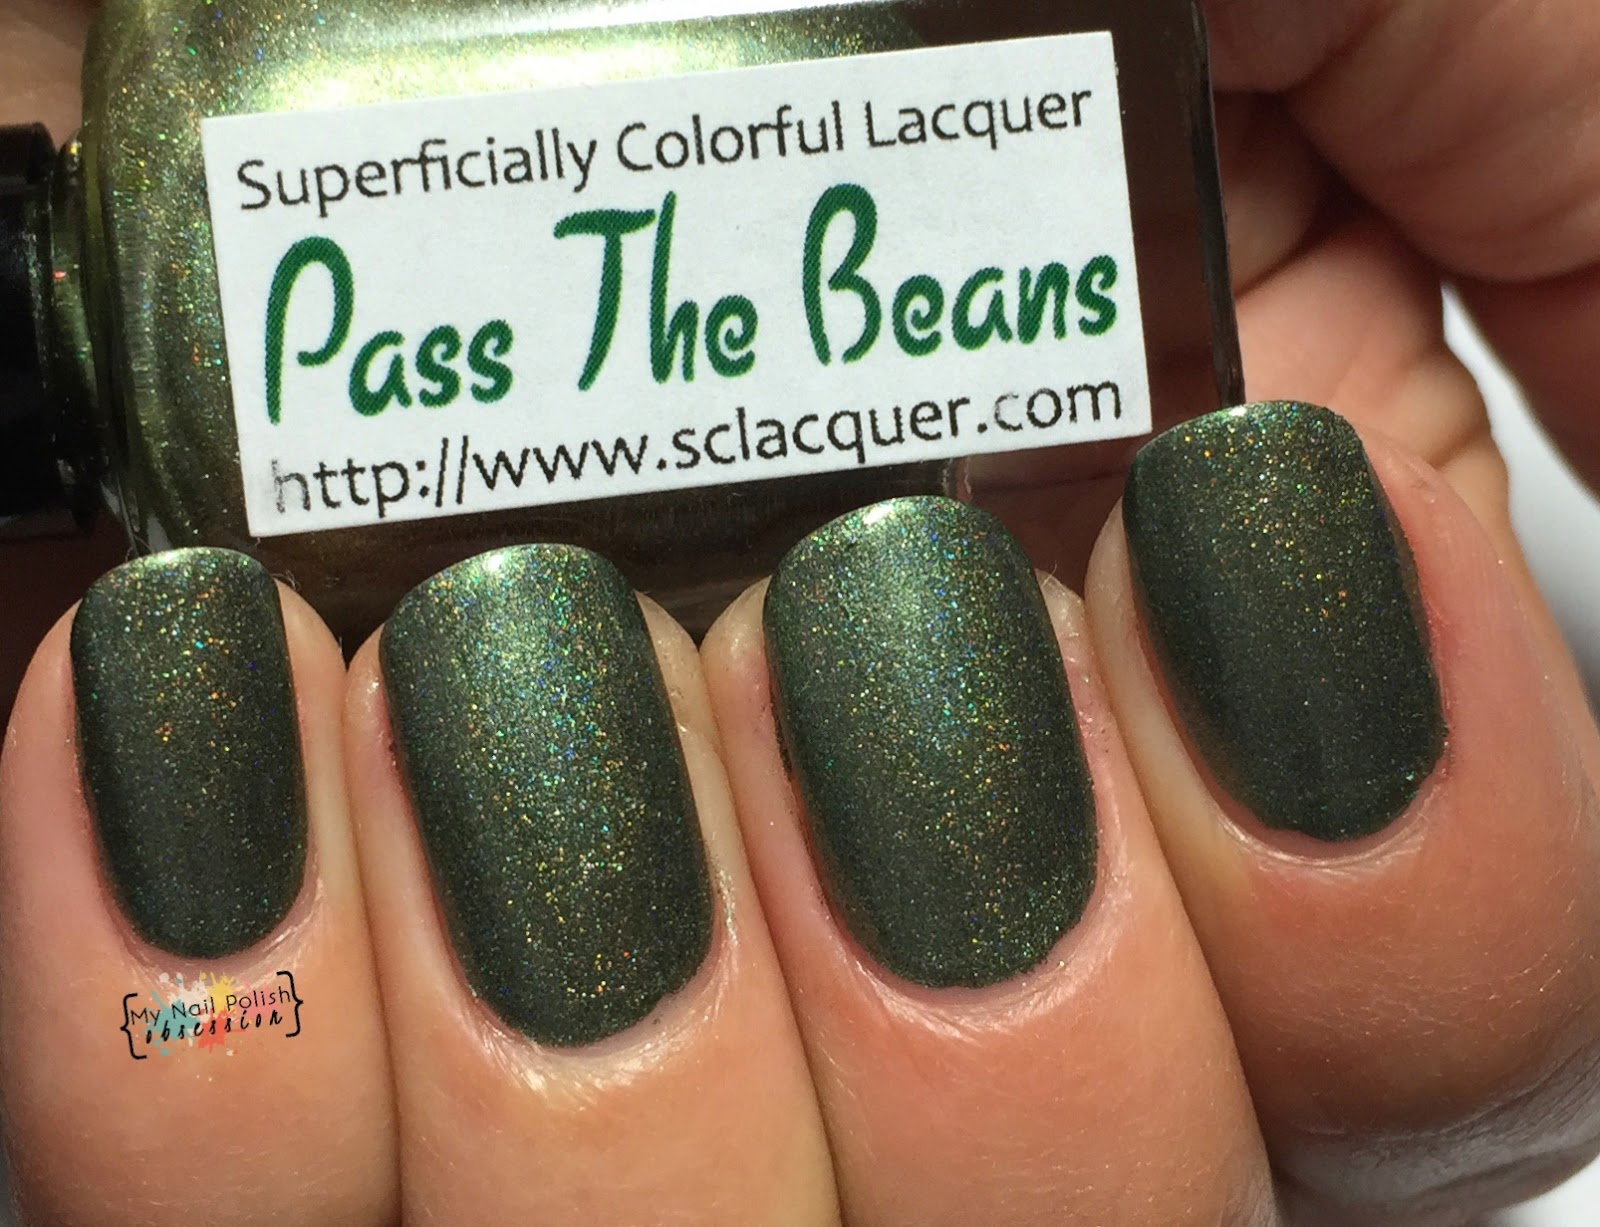 Superficially Colorful Lacquer Pass the Beans